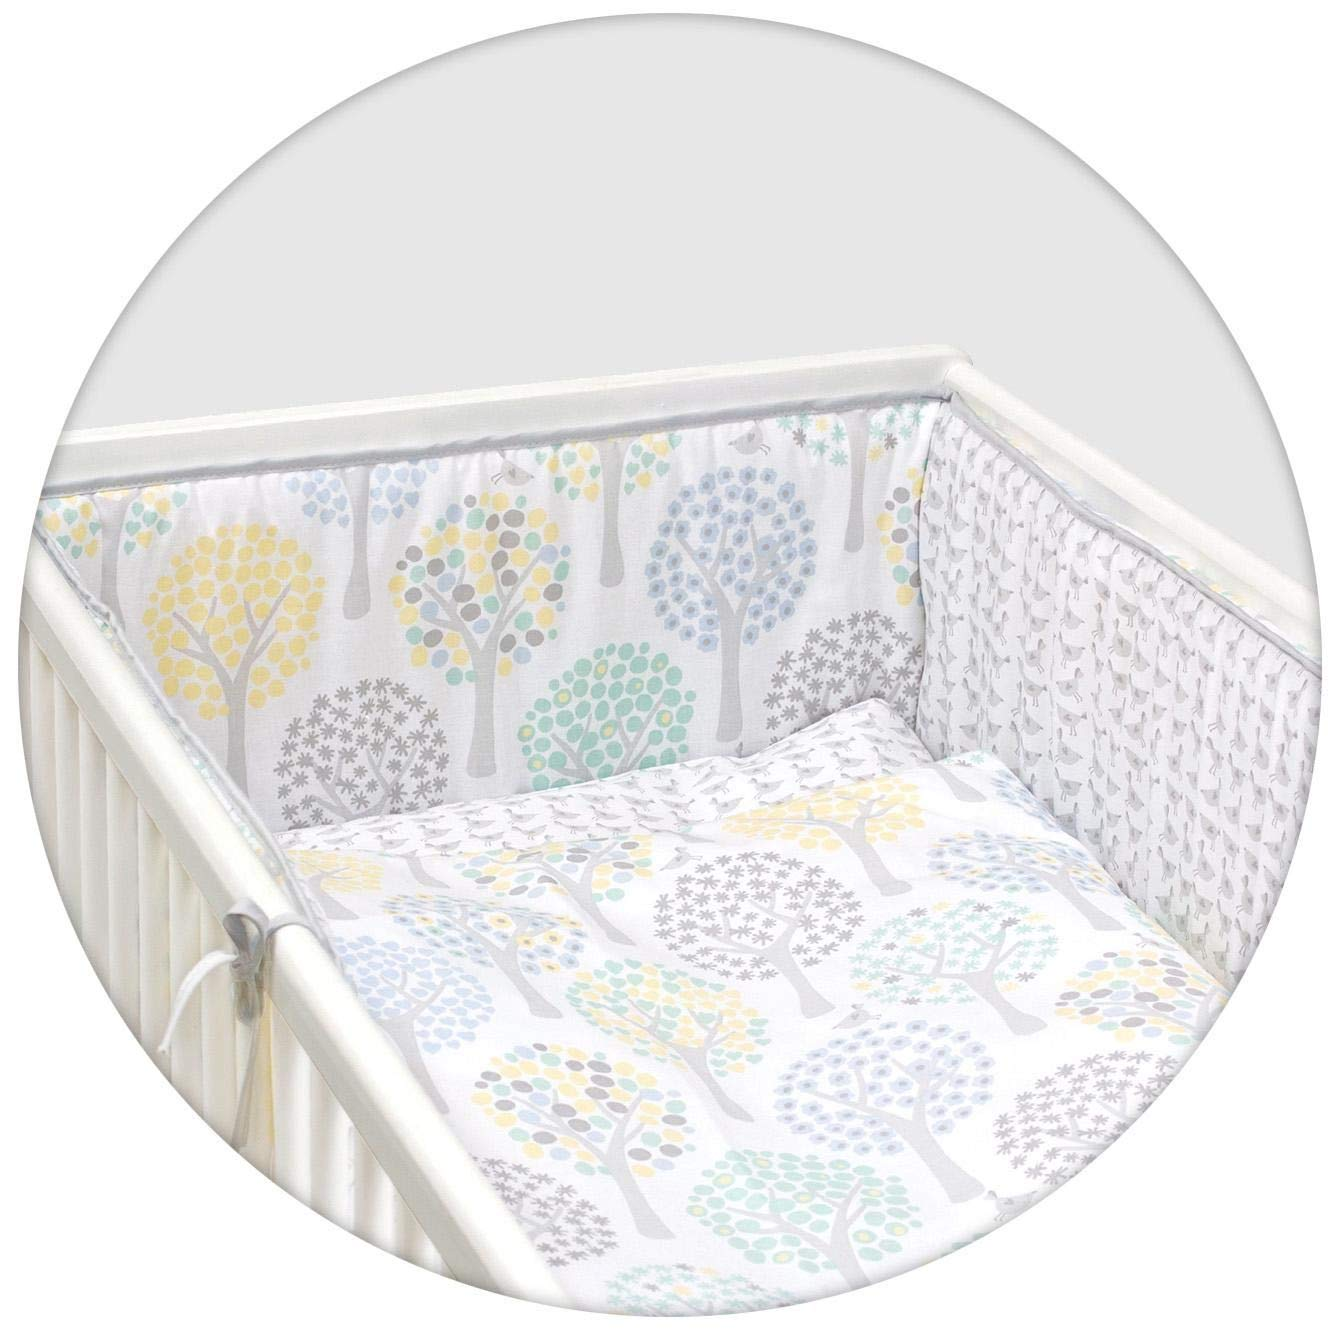 10 Piece Cot Bedding Set with Safety Padded Bumper Fits Cot Bed 140x70 cm, Pattern 13